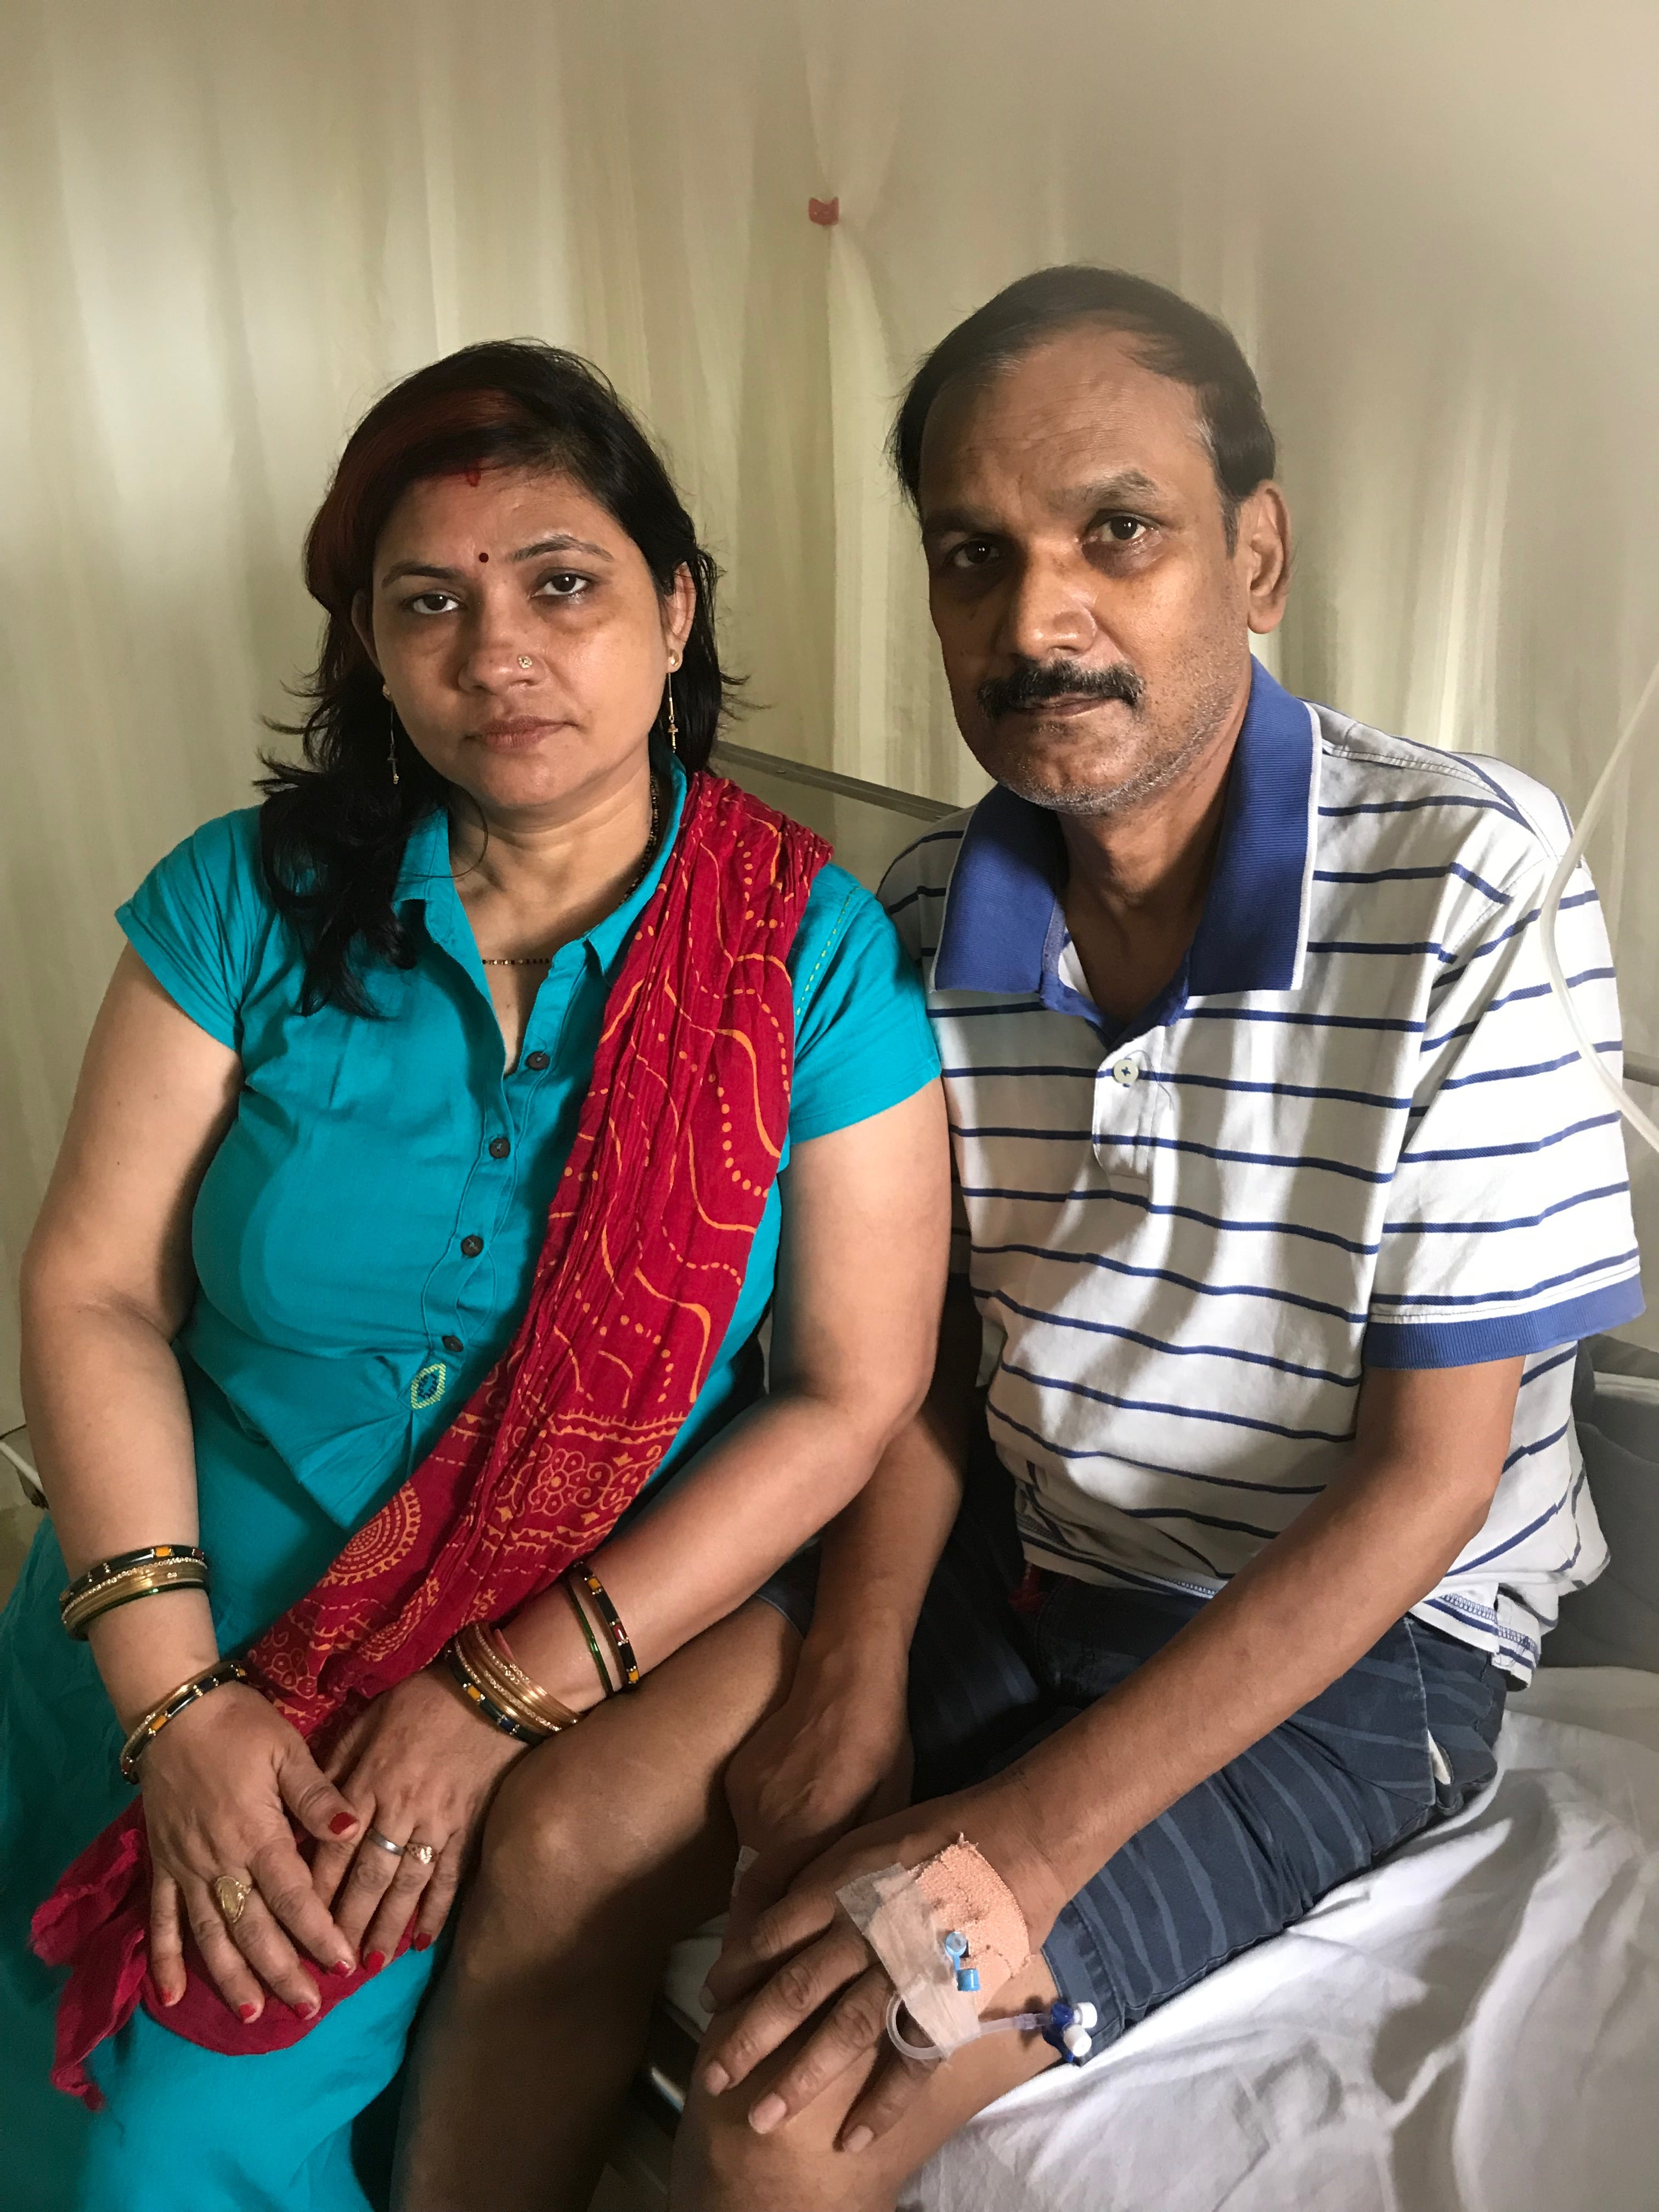 Sanjay Kumar Srivastava, Asha Ek Hope Foundation for ALS/MND, Diagnosed 2018, India